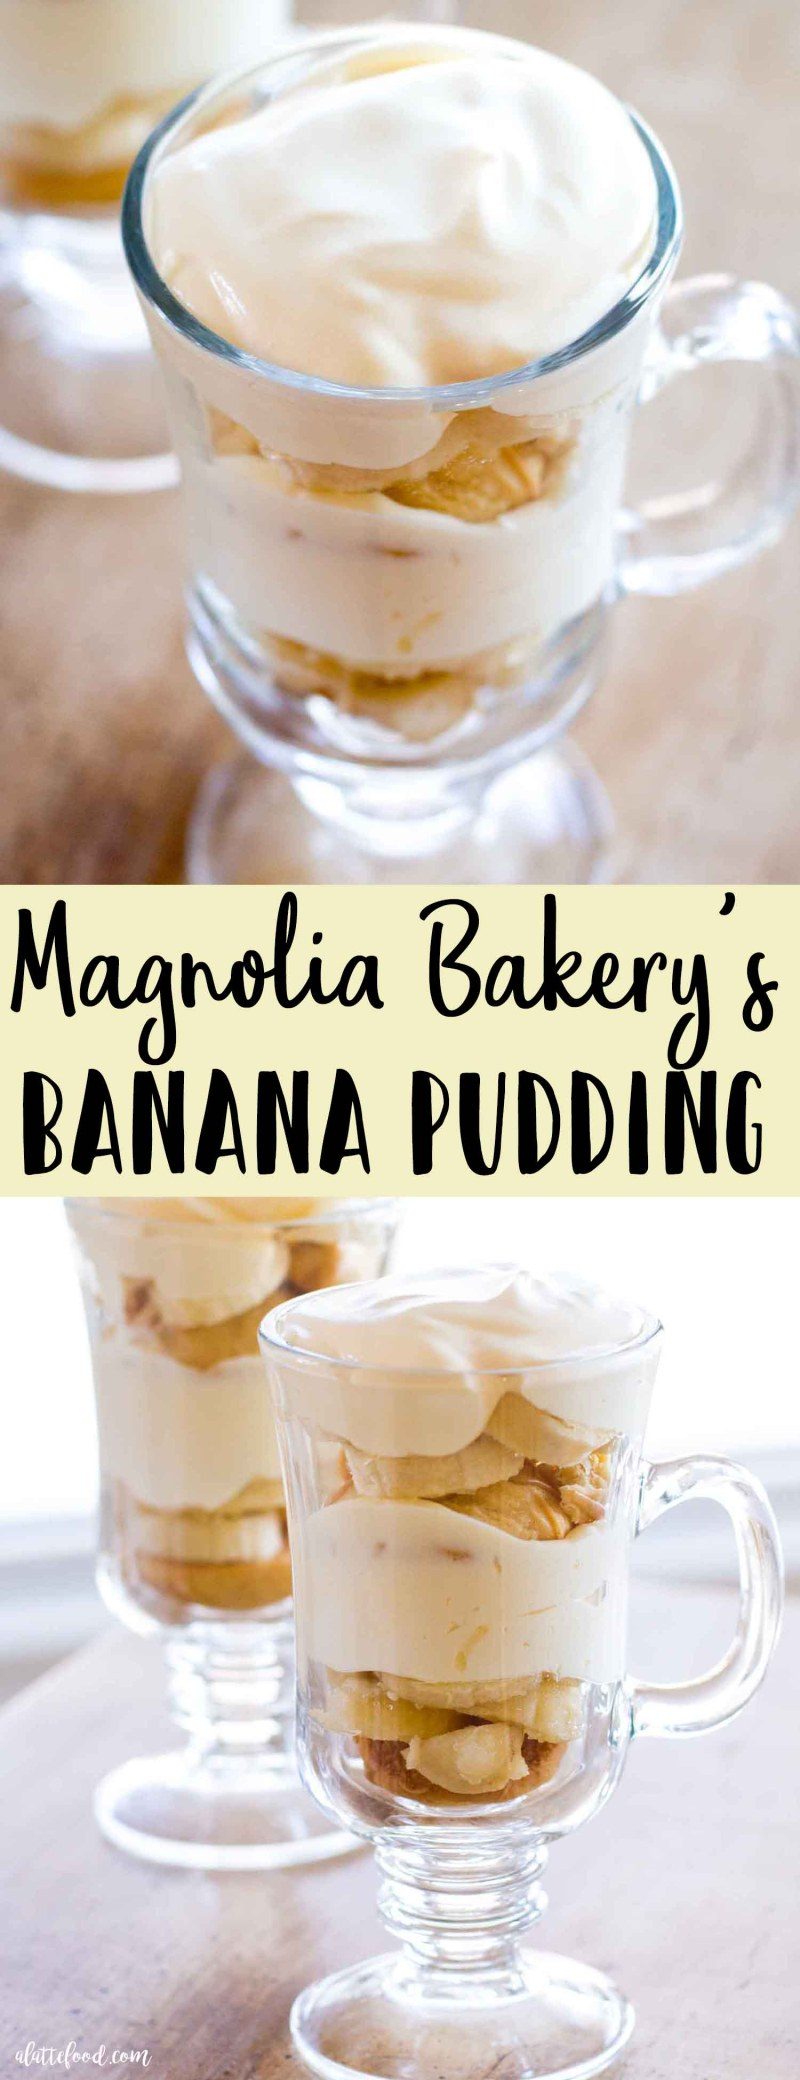 banana pudding recipe collage